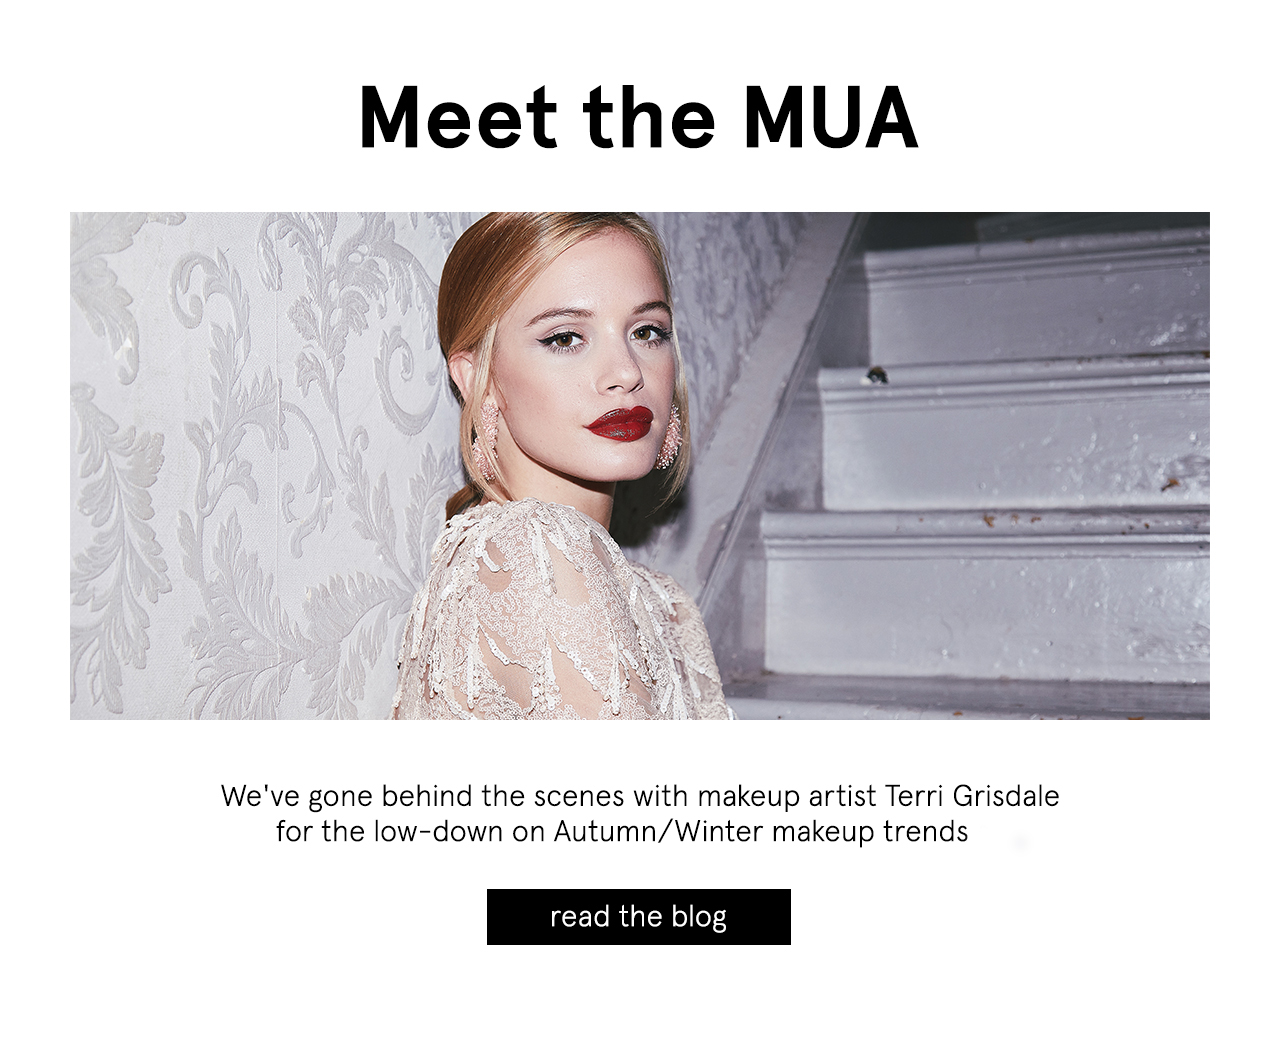 Meet the MUA